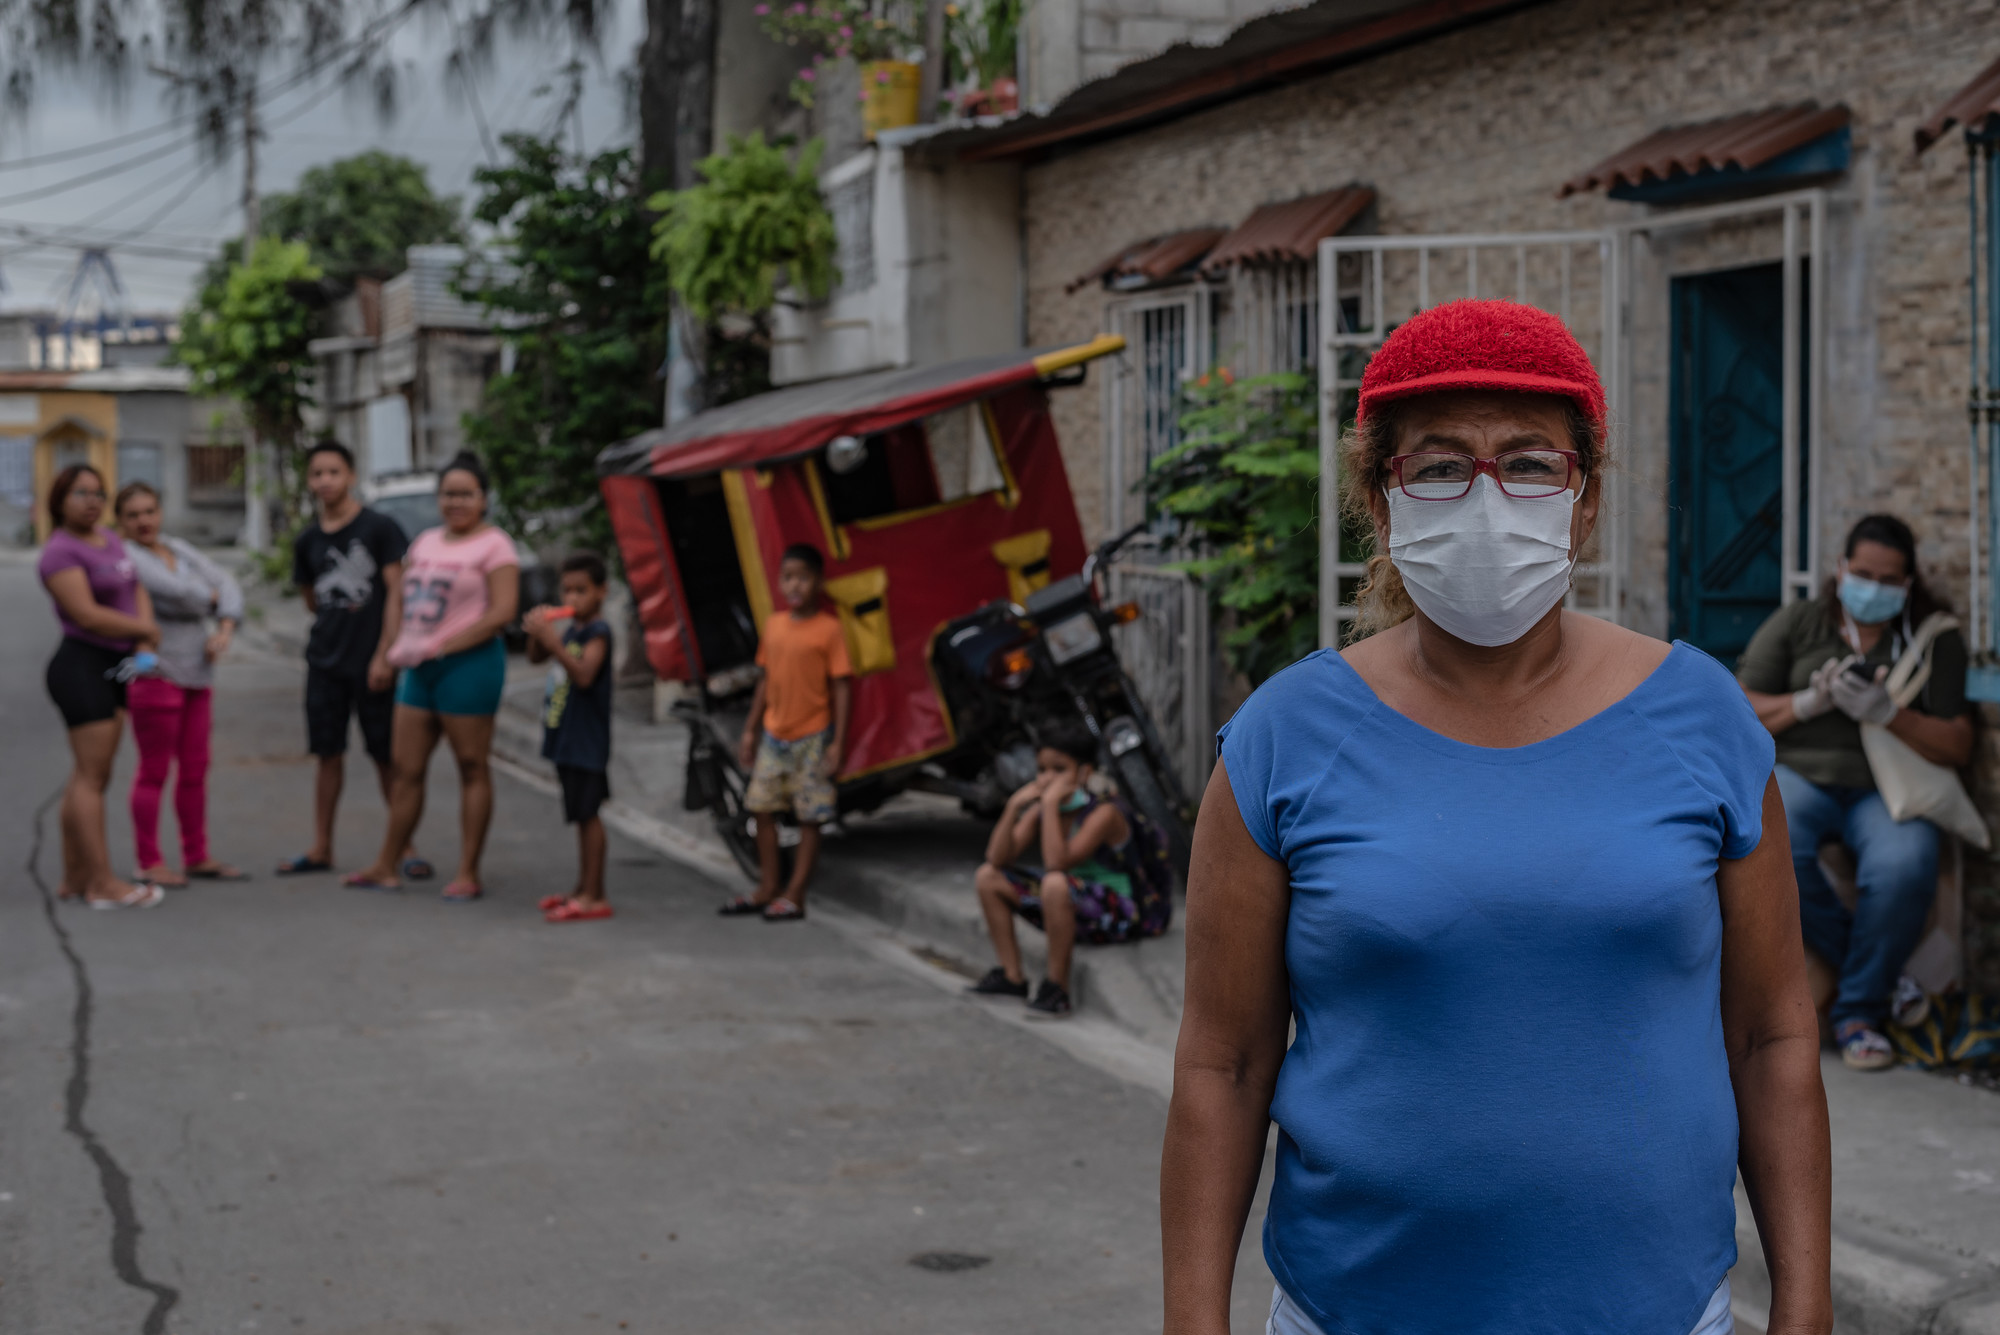 A woman in a hat and face mask stands in a city street in front of her apartment